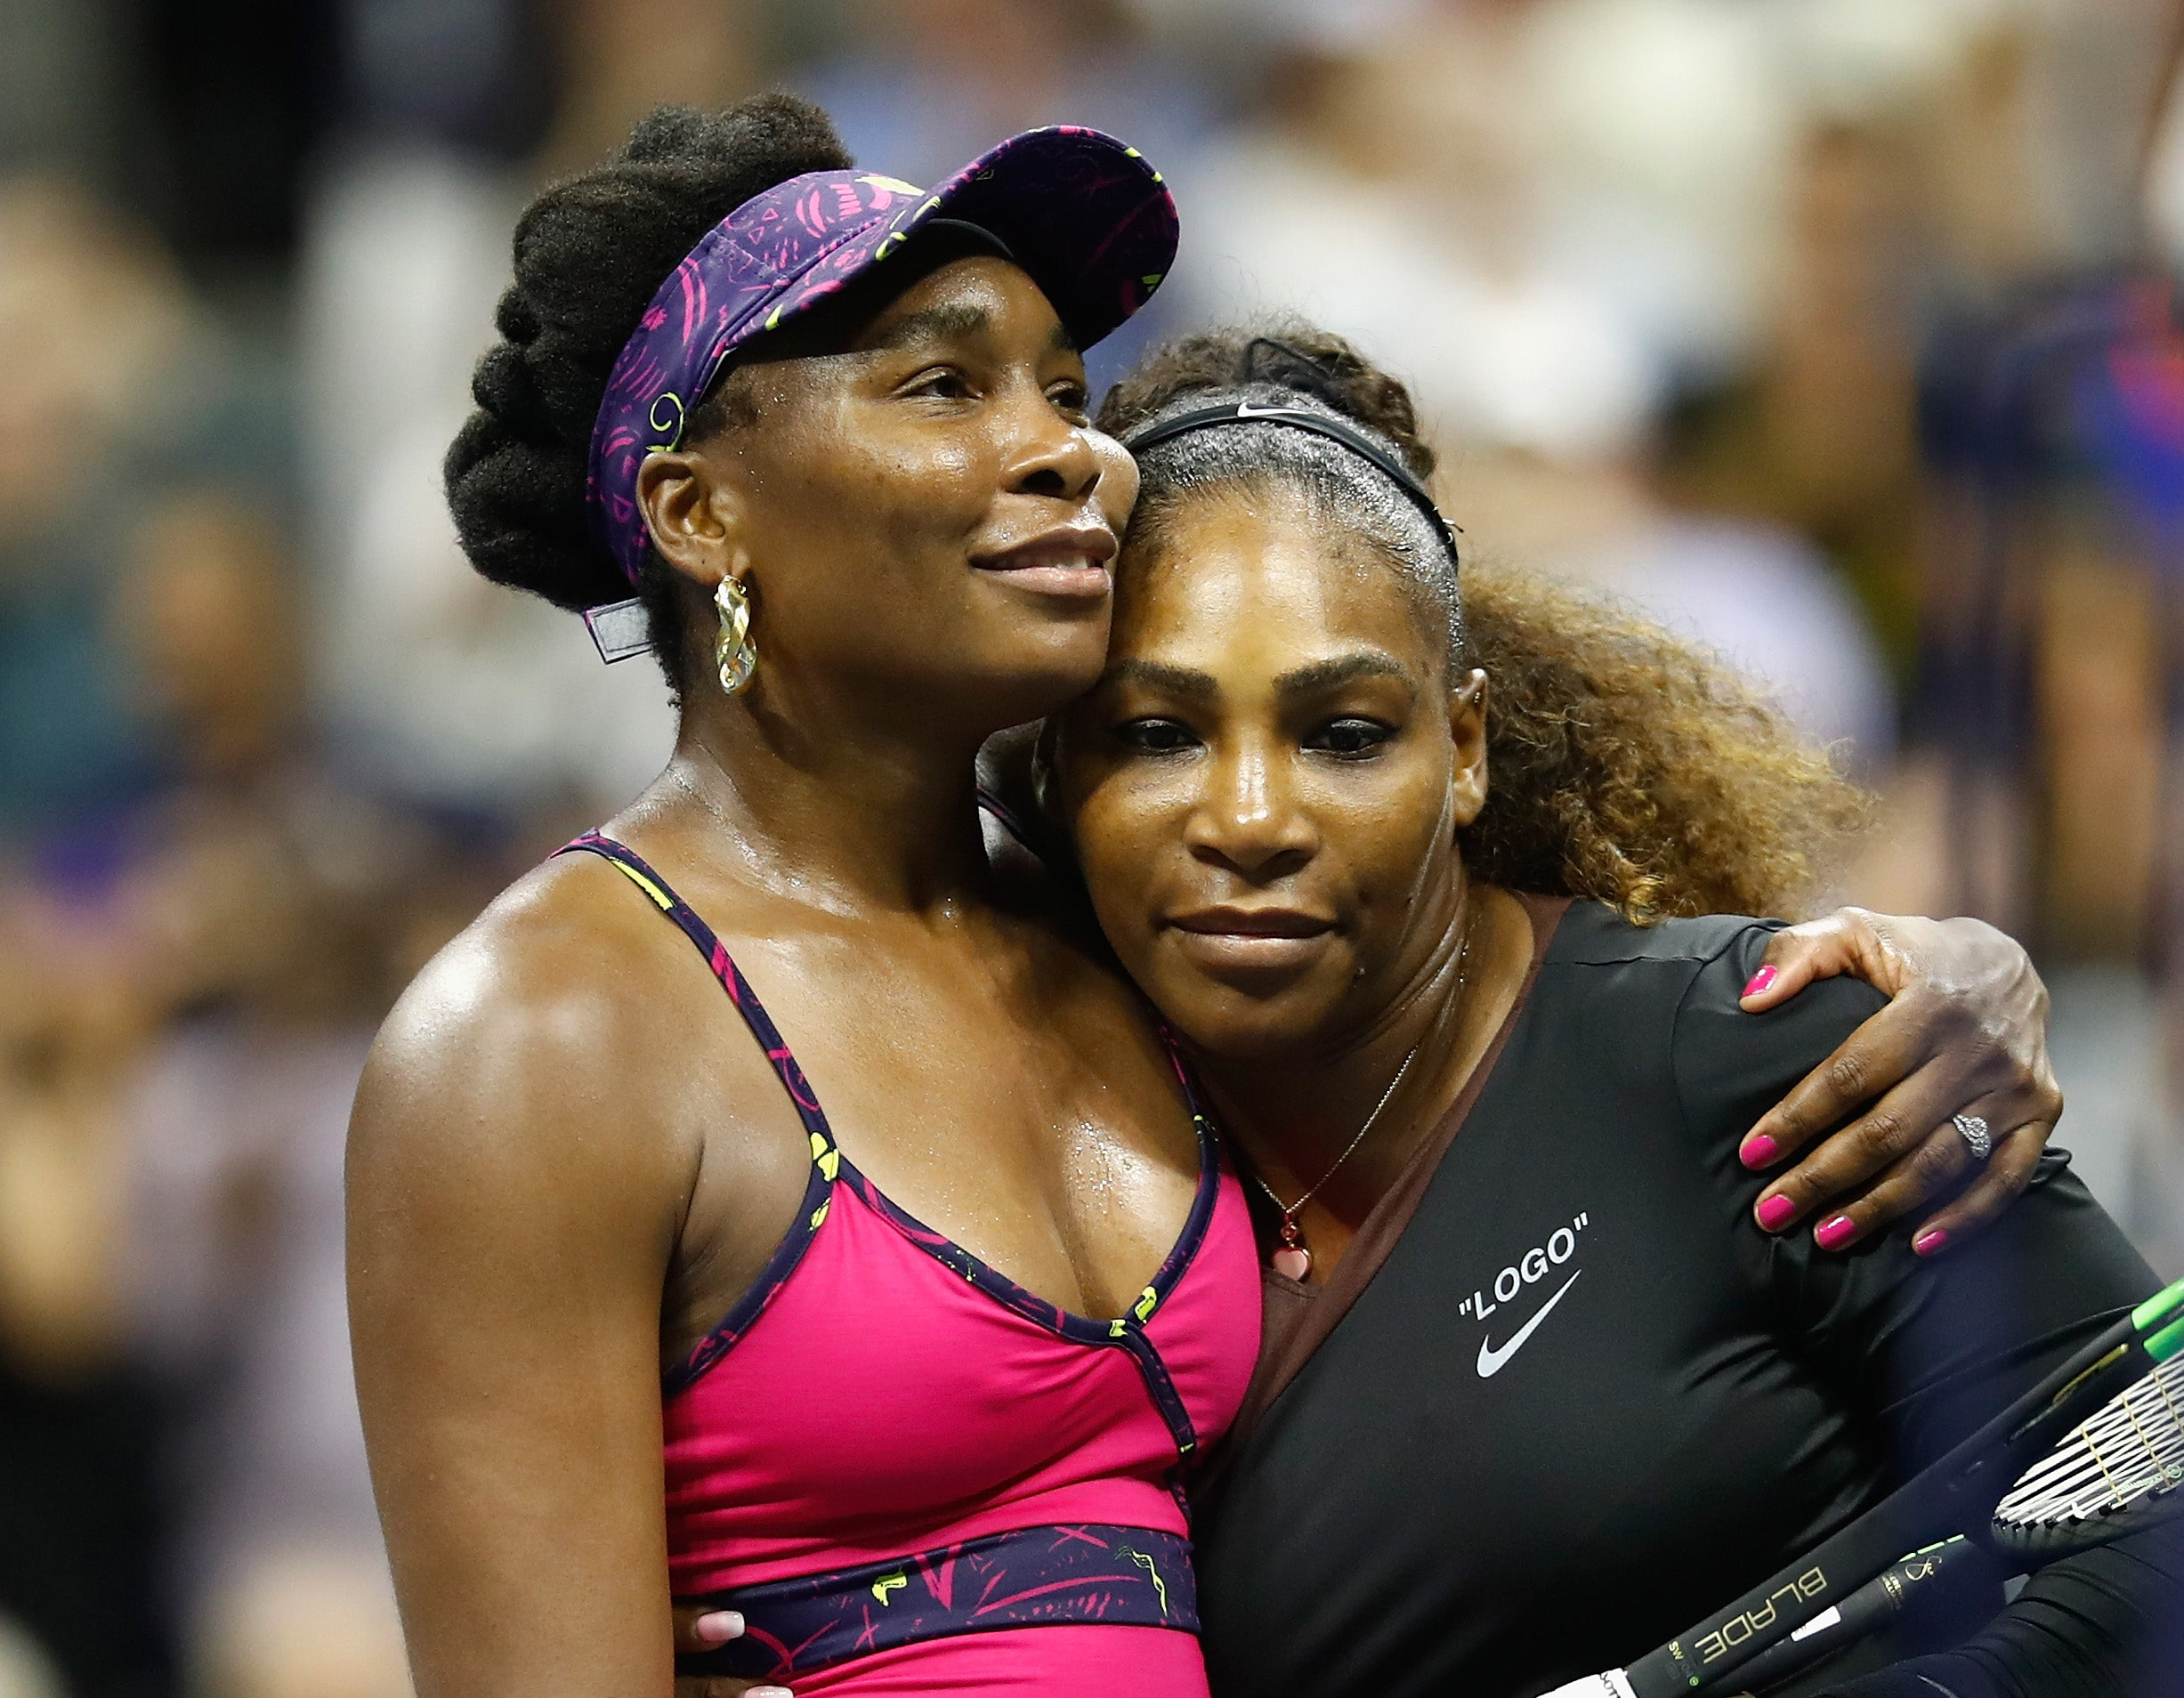 Serena Williams Clenches Victory In U.S. Open Match Against Big Sister Venus